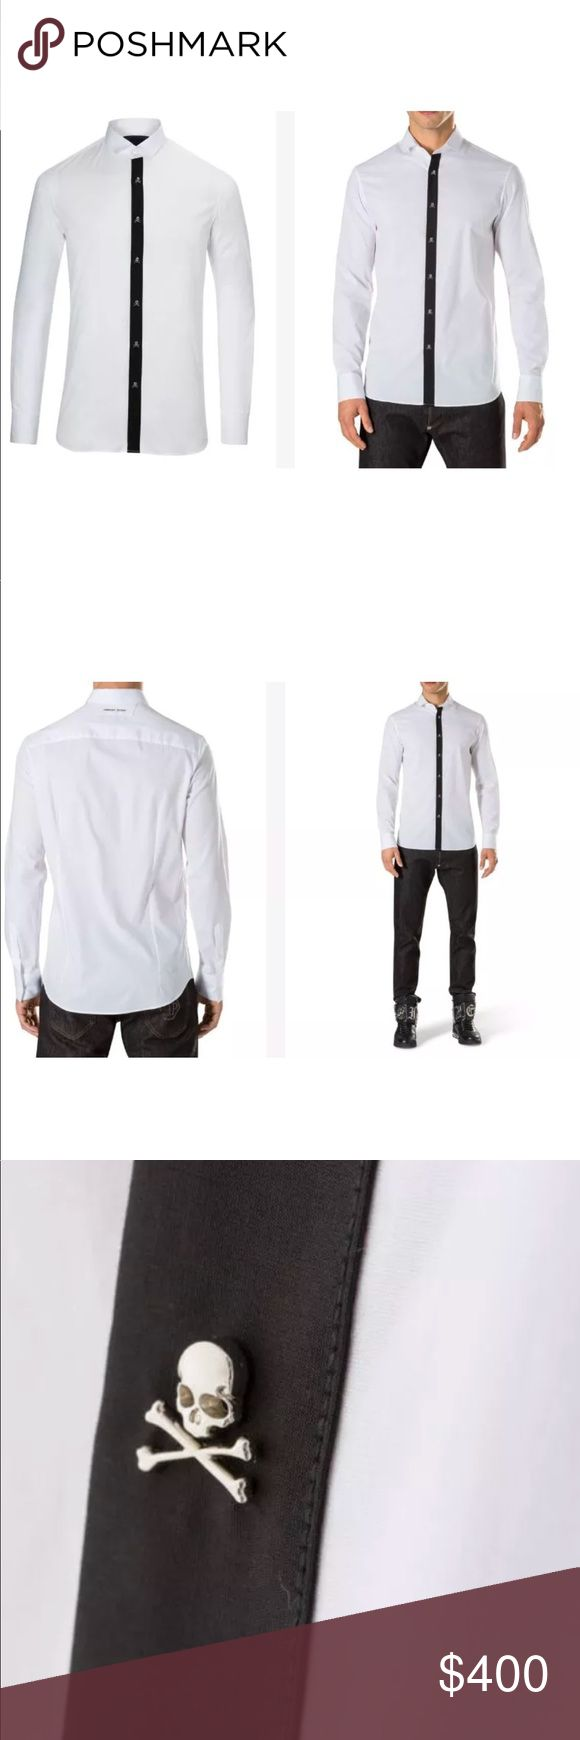 Philipp Plein DressShirt White Size M NEW WITH TAG Poplin stretch cotton shirt. Contrasted concealed placket decorated with little nickeled skulls. Removable collar stays. Nickel plated Philipp Plein written placed at the back yoke. Mother of pearl buttons. Back darts. Philipp Plein Shirts Dress Shirts